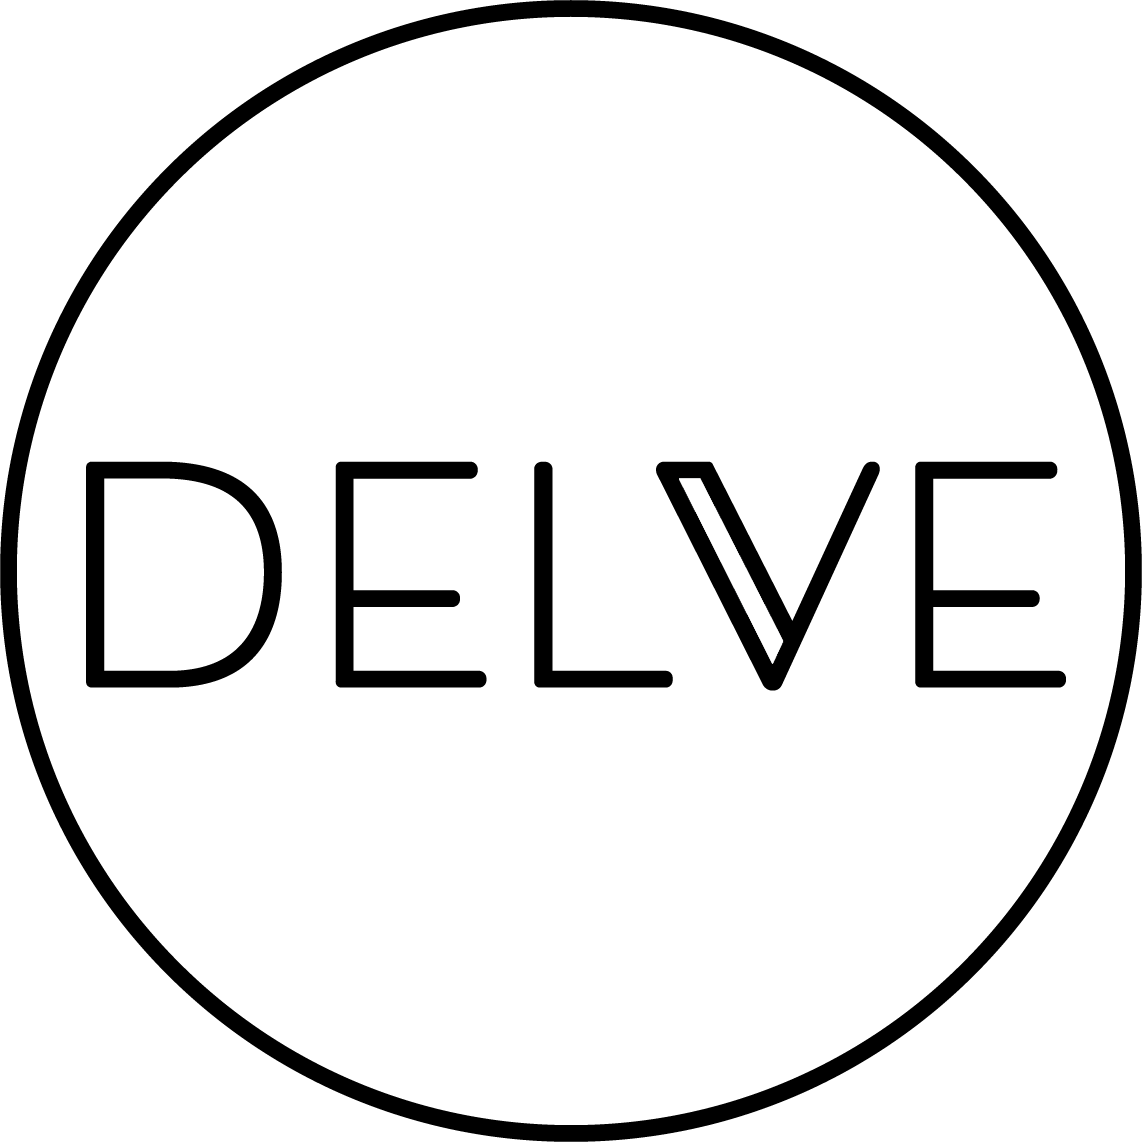 Logo for Delve Books. Image shows a circle with the word Delve in capital letters in modern type.